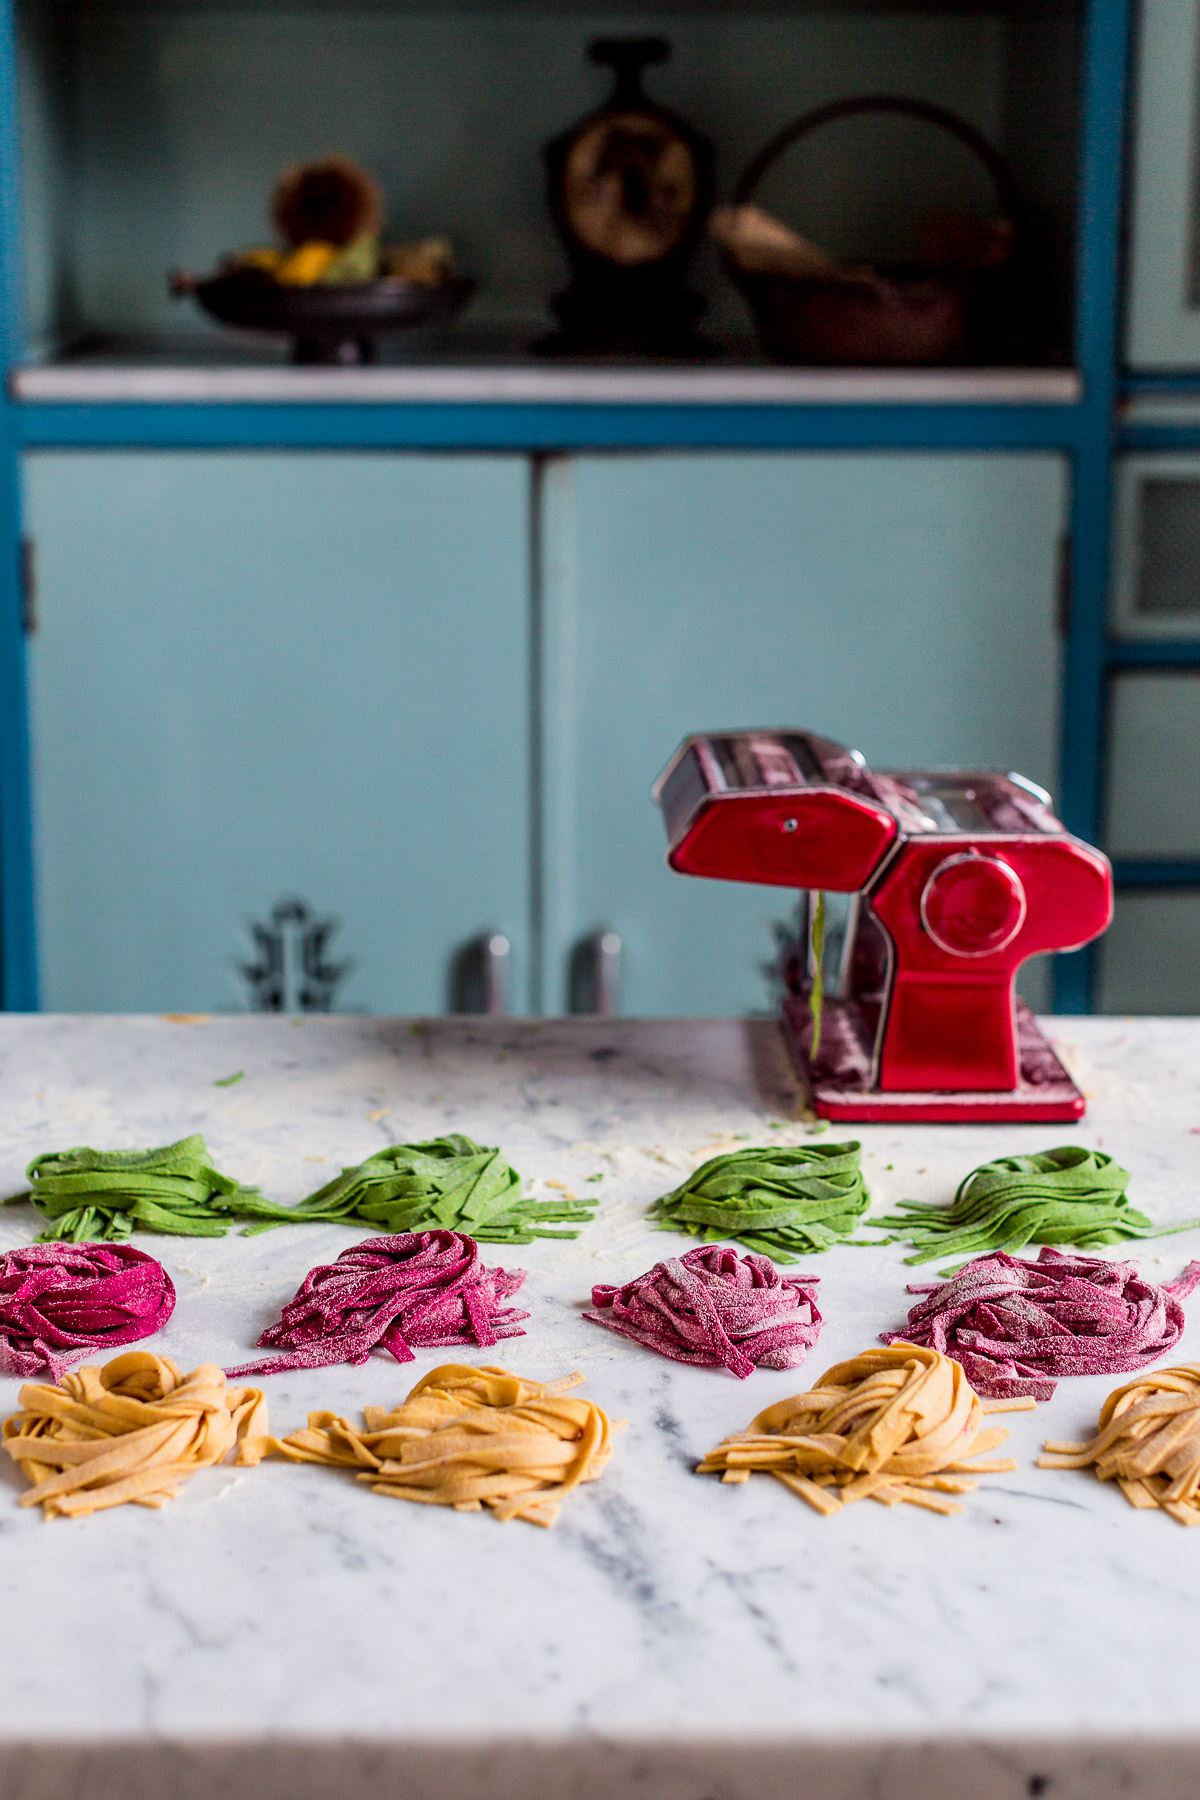 VEGAN COLORED FRESH PASTA RECIPE Beet pasta Spinach pasta Pumpkin pasta | ricetta PASTA FRESCA VEGAN COLORATA senza uova pasta alla barbabietola pasta alla zucca pasta agli spinaci #tagliatelle #vegan #pasta #coloredpasta #beetpasta | www.beautyfoodblog.com